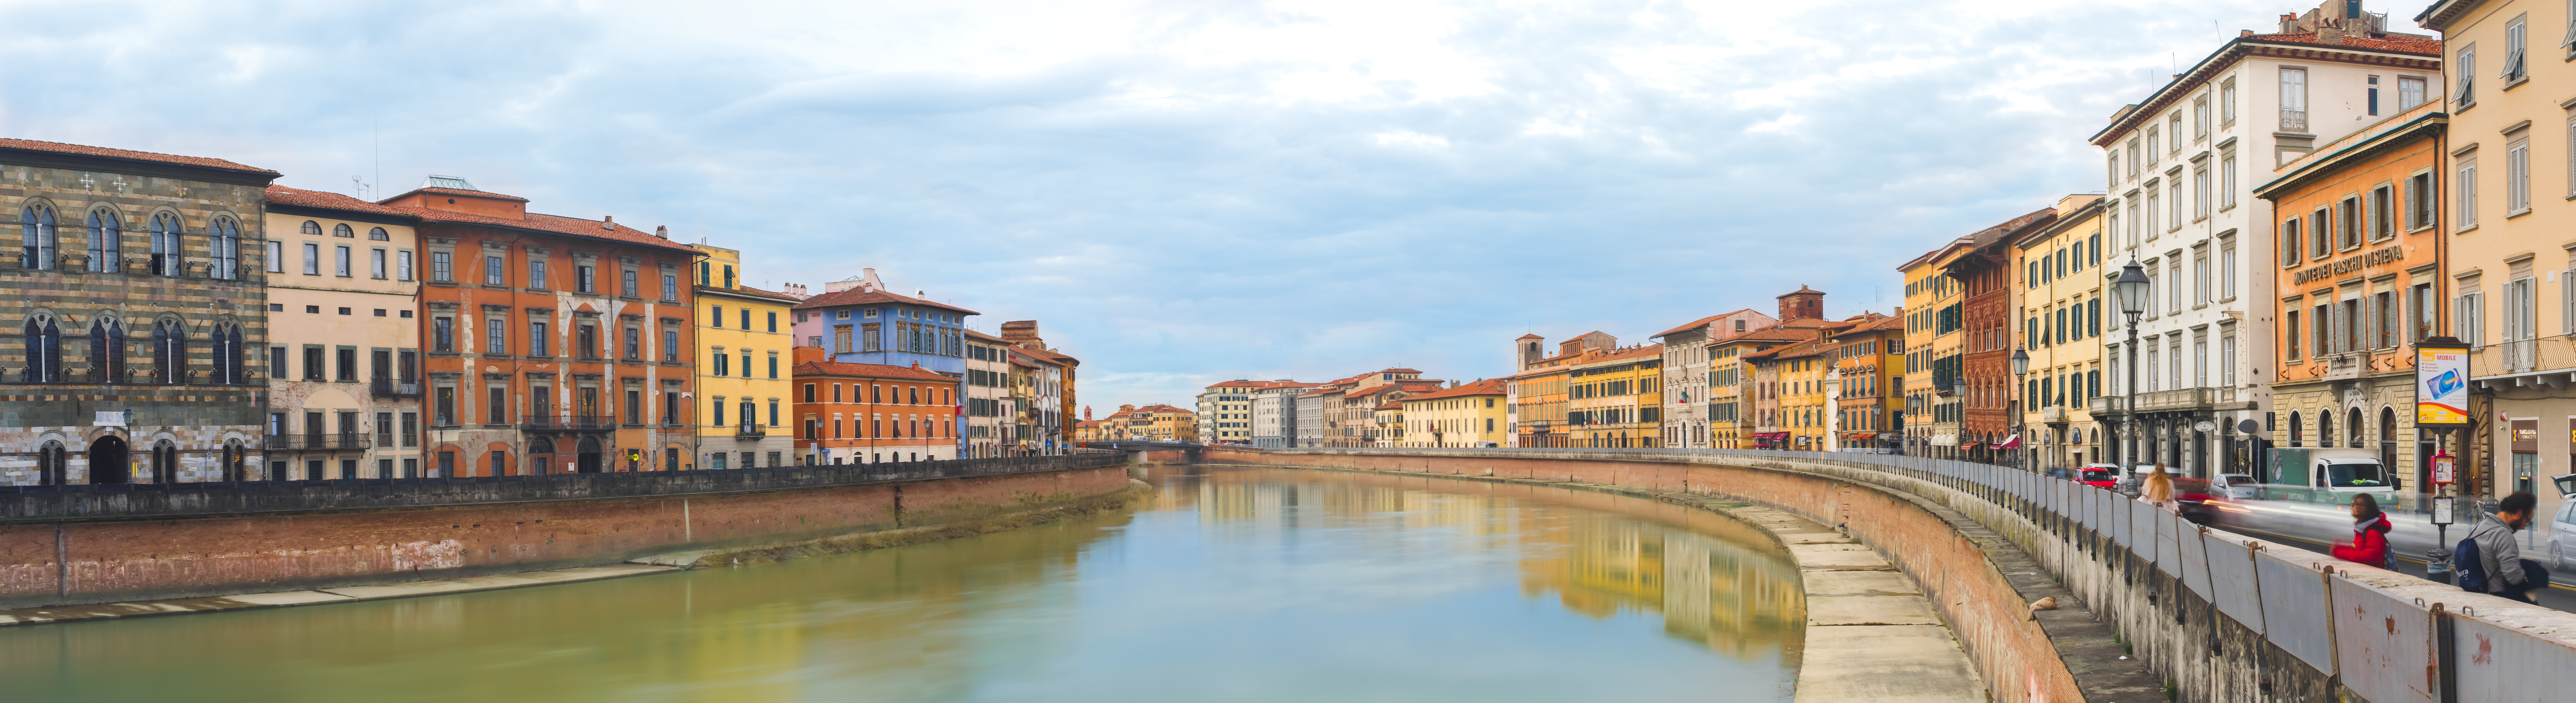 Panorama of Arno River in Pisa, Italy